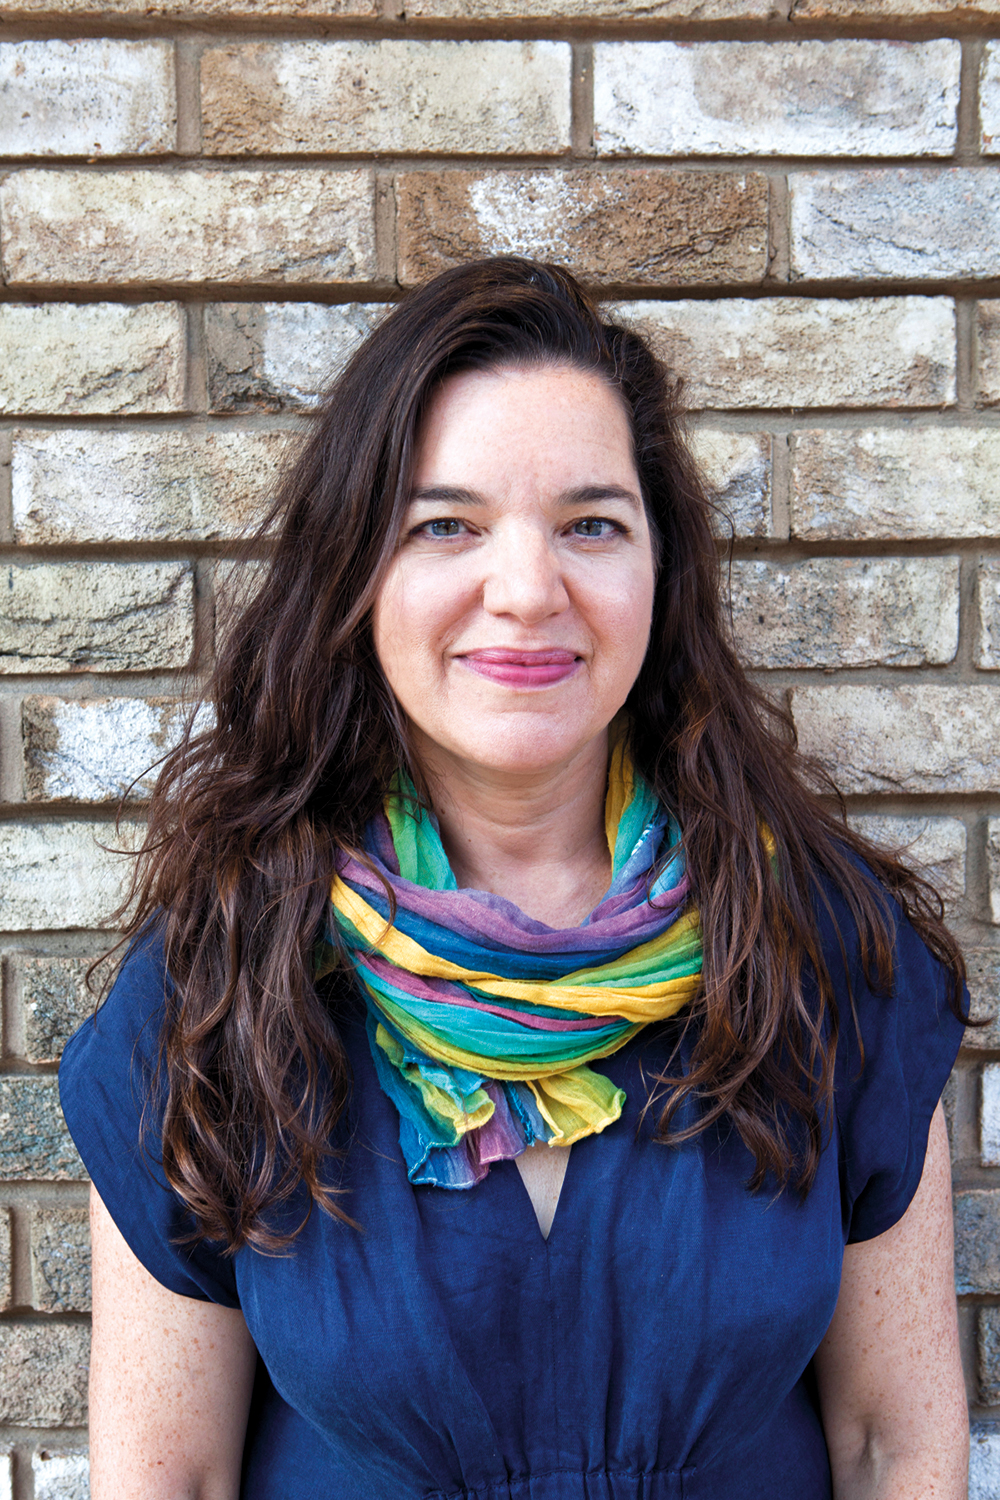 Rebecca Taylor     Editor    Rebecca is the driver of JR's innovation, creativity and high standards of research and writing. Before JR she was Time Out London's news editor and has also worked for the Guardian and BBC World Service.    rebecca@jewishrenaissance.org.uk